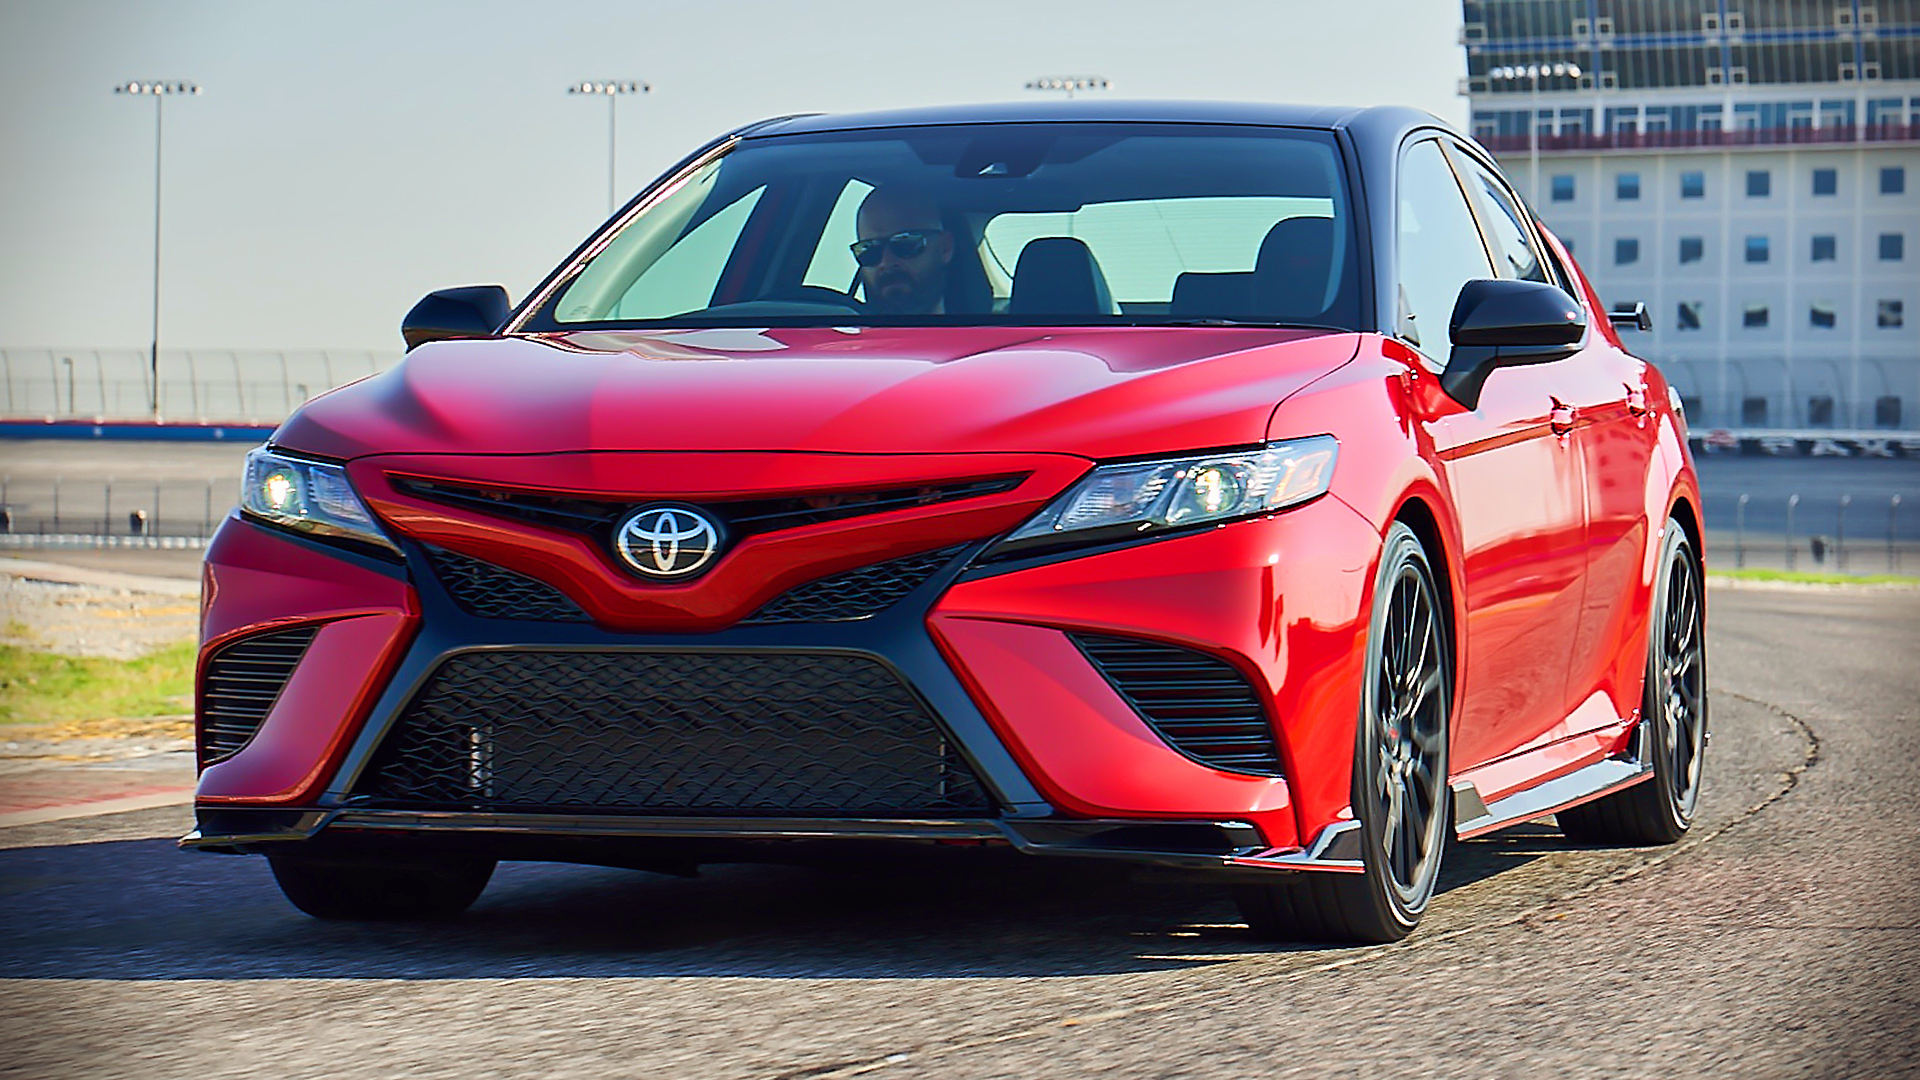 2020 Toyota Camry TRD Red Pictures Images